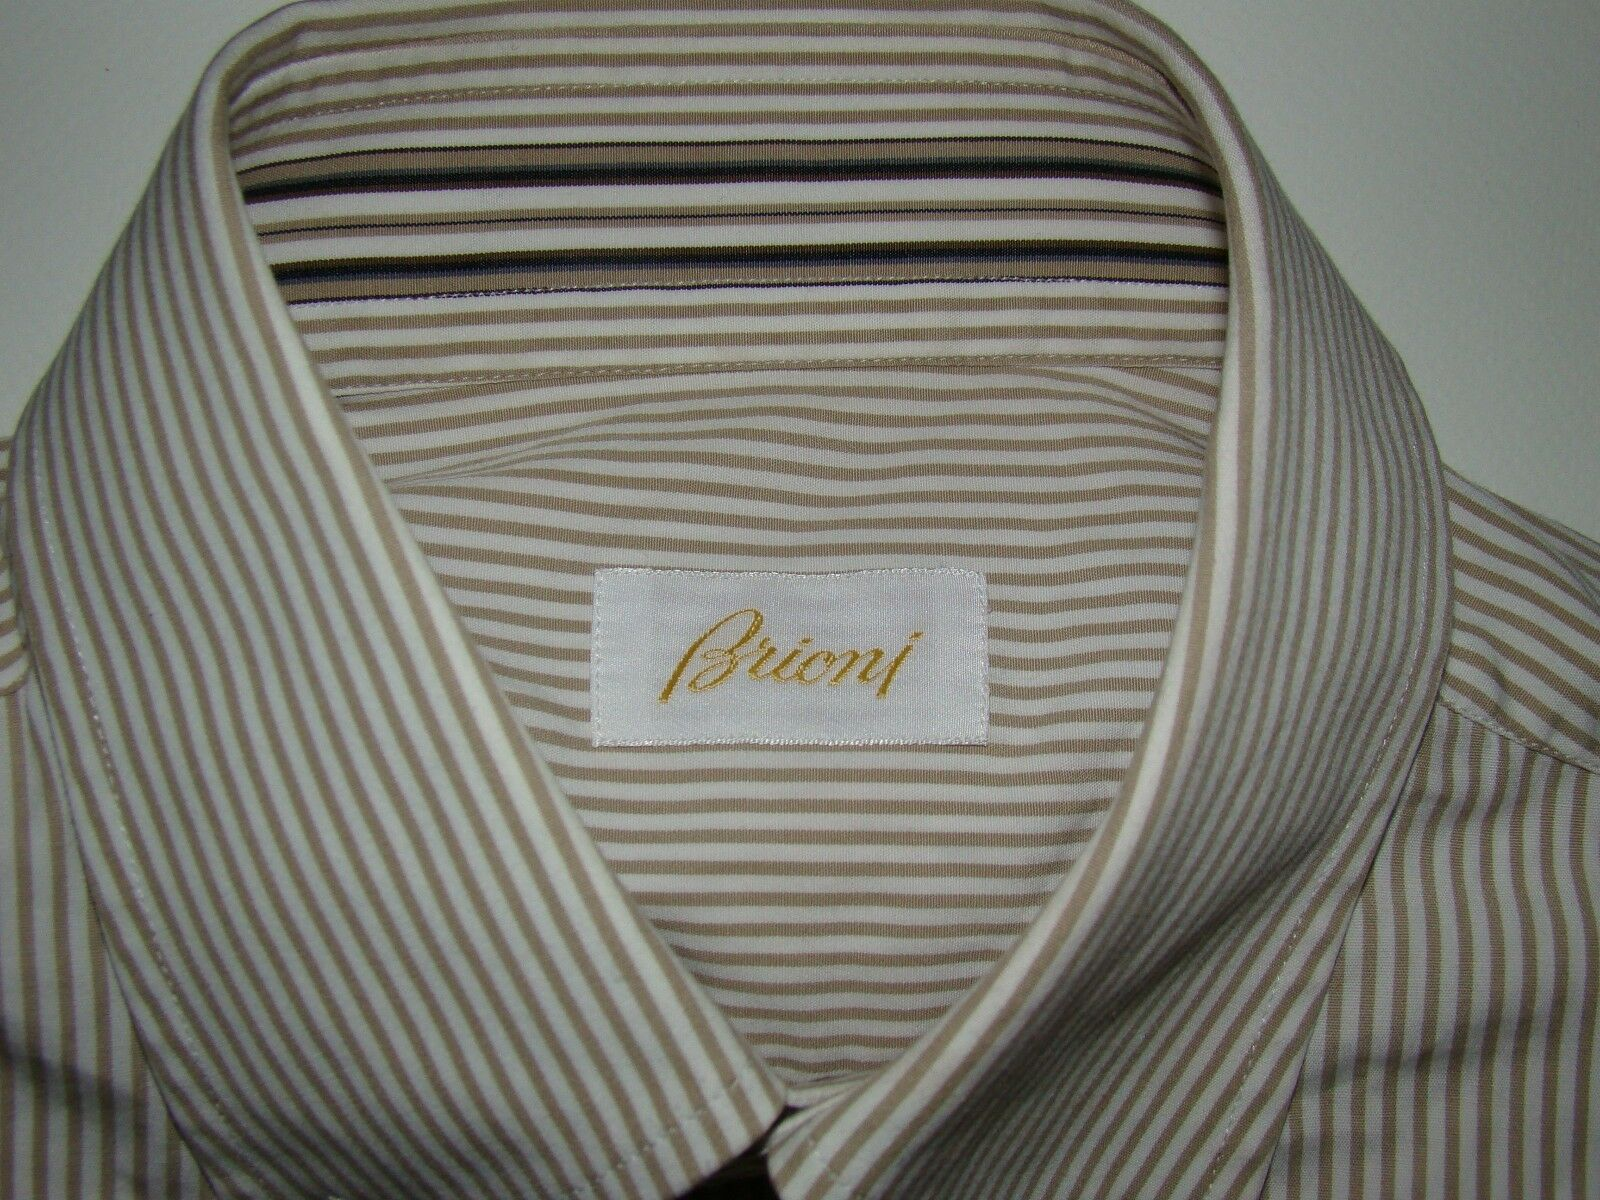 BRIONI Men's Shirt Cotton Luxury Made in  M 15 ¾ 40 Authentic TOP